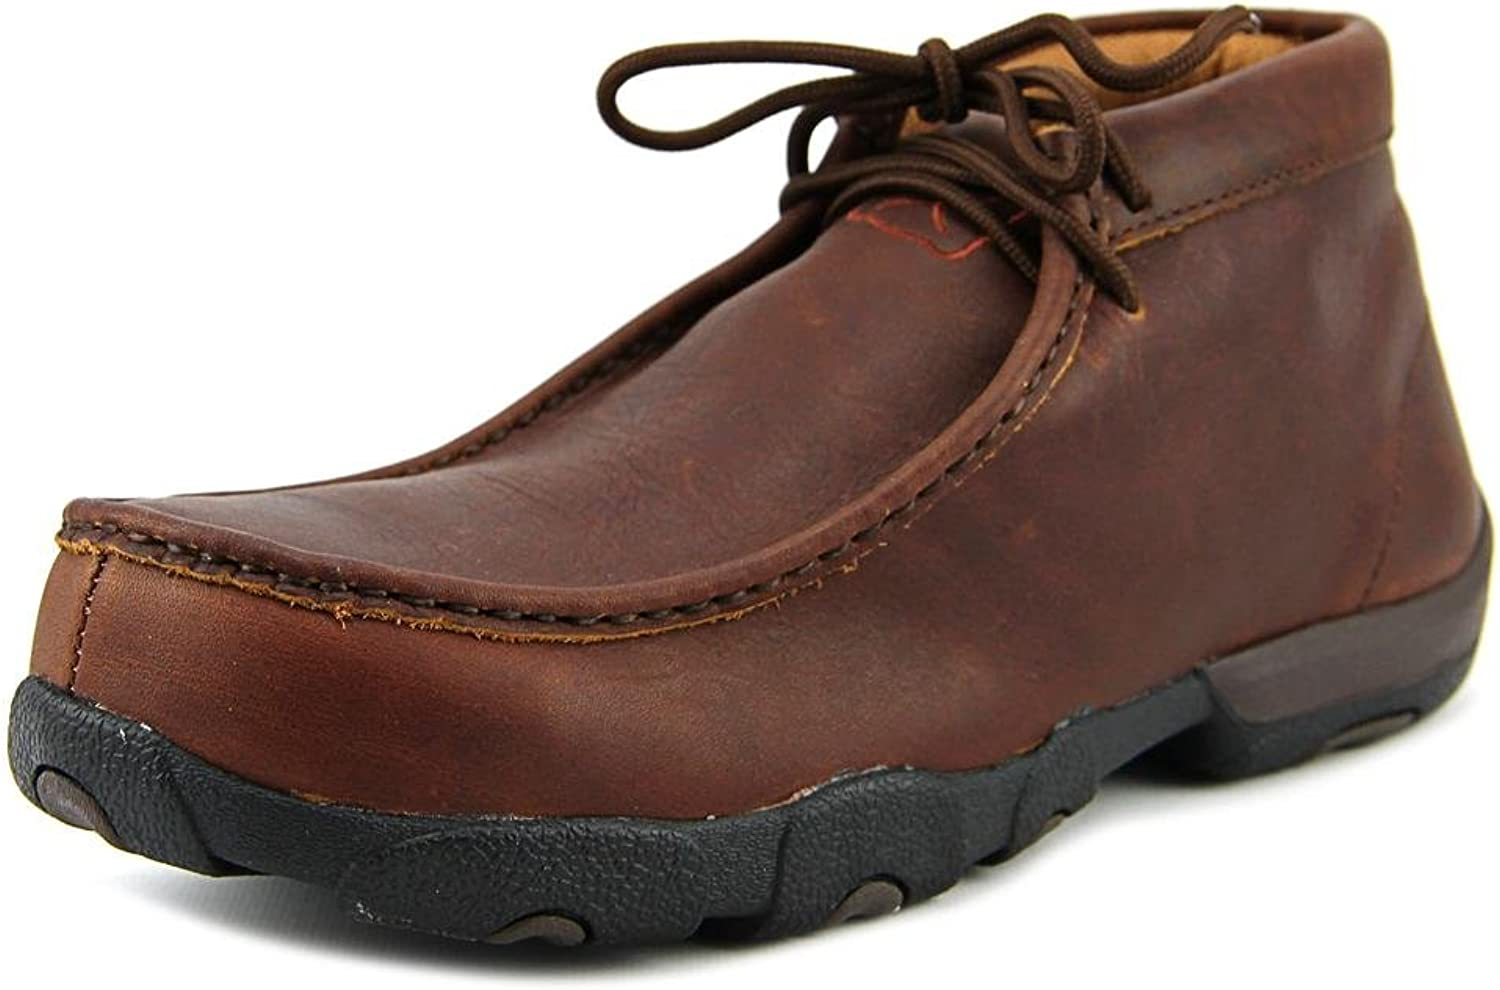 Twisted X MDMCT01 Men's Driving Moc Safety shoes - Oiled Brown - 9.0\M